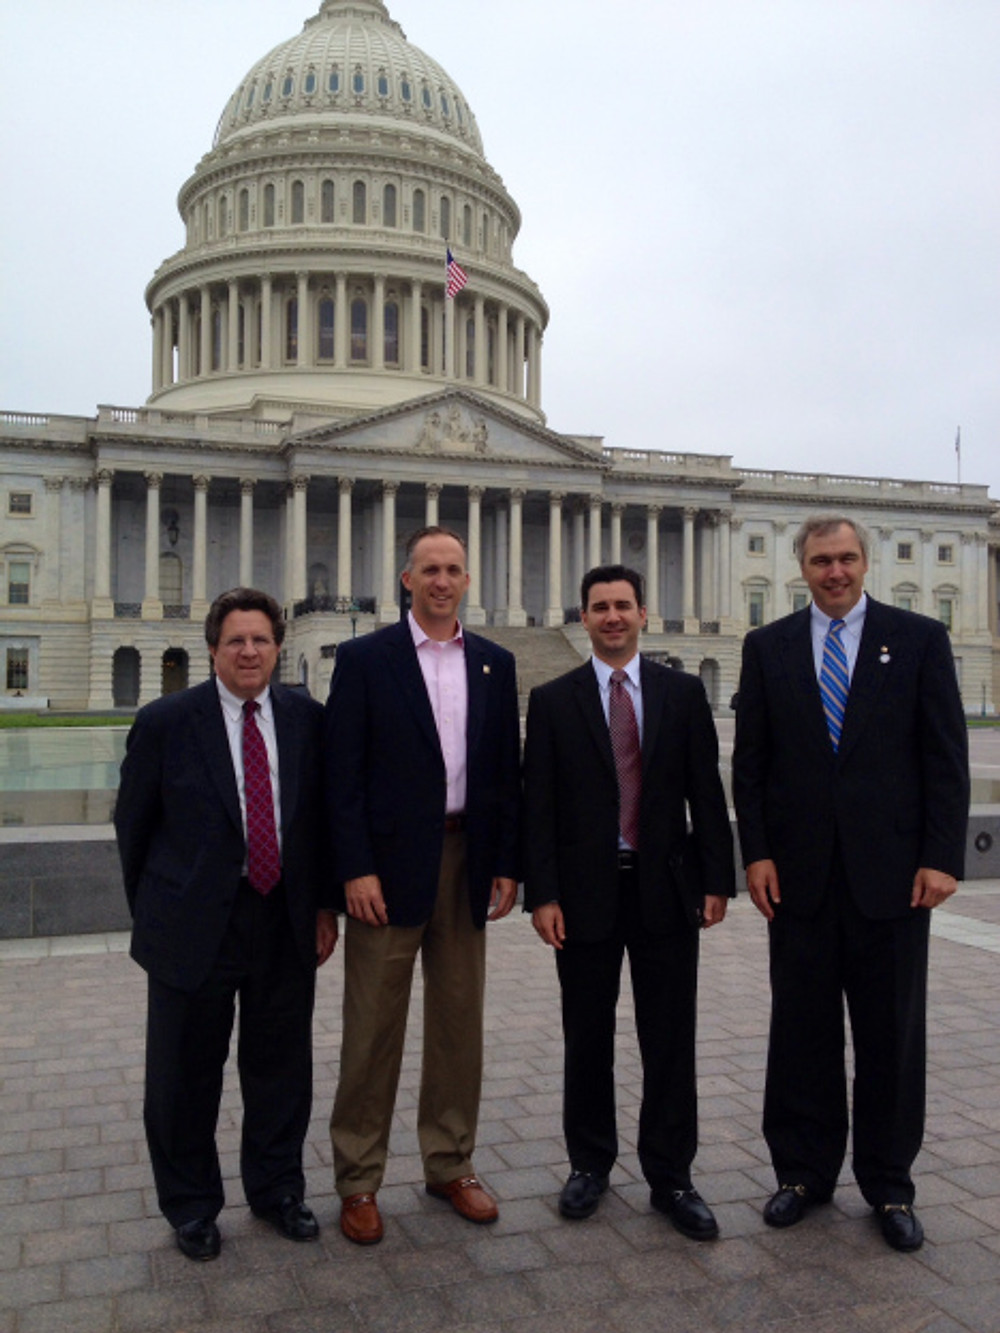 Charlotte  members Eric Locher, Joe Rempson, Scott Wurzbacher and Paisley Gordon on Capitol Hill